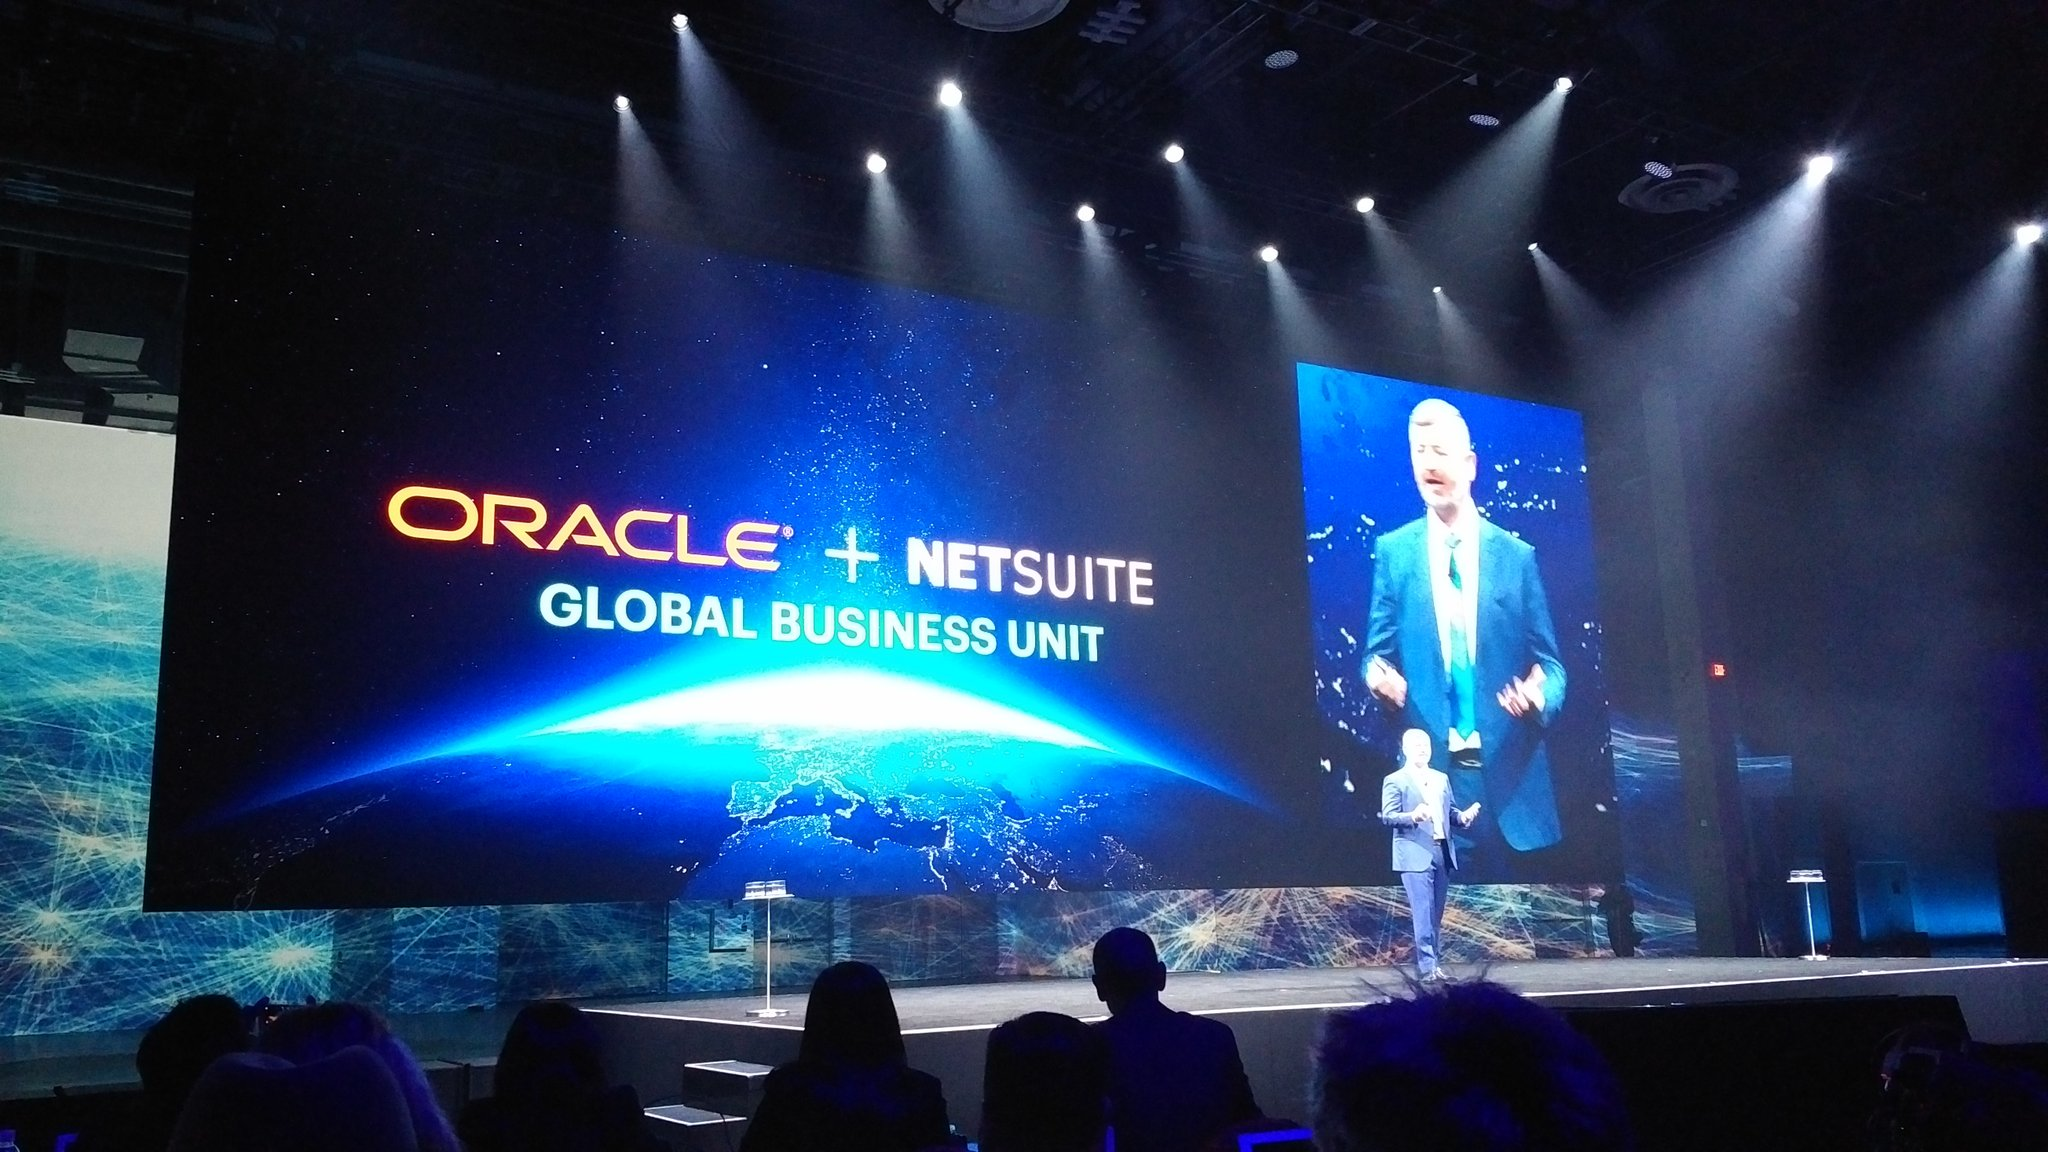 McGeever - @NetSuite is now an @Oracle global business unit. Him and Evan reporting to @MarkVHurd #SuiteWorld17 https://t.co/4Iw4HWFV8Q